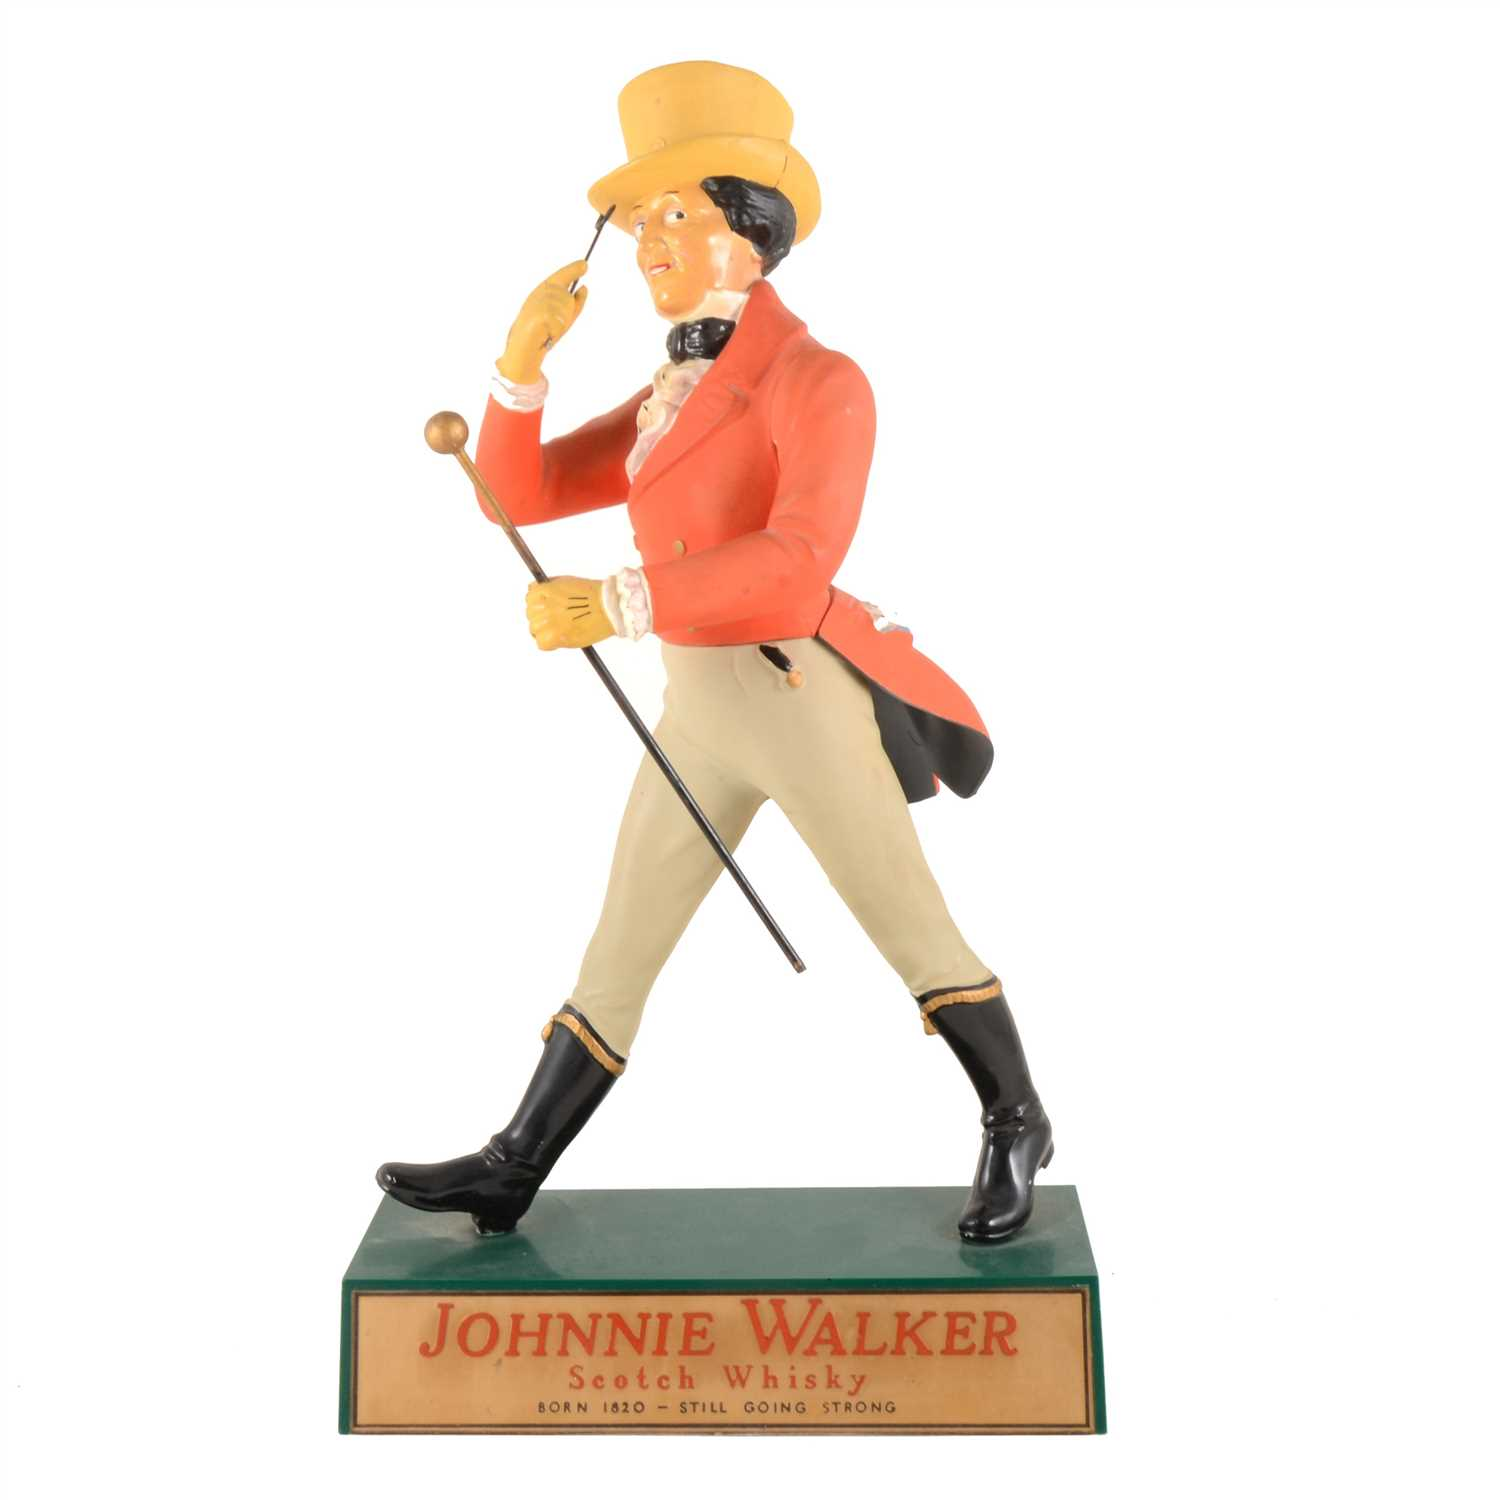 Lot 160-Bar-top advertising model, 'JOHNNY WALKER Scotch Whisky', 43cm.